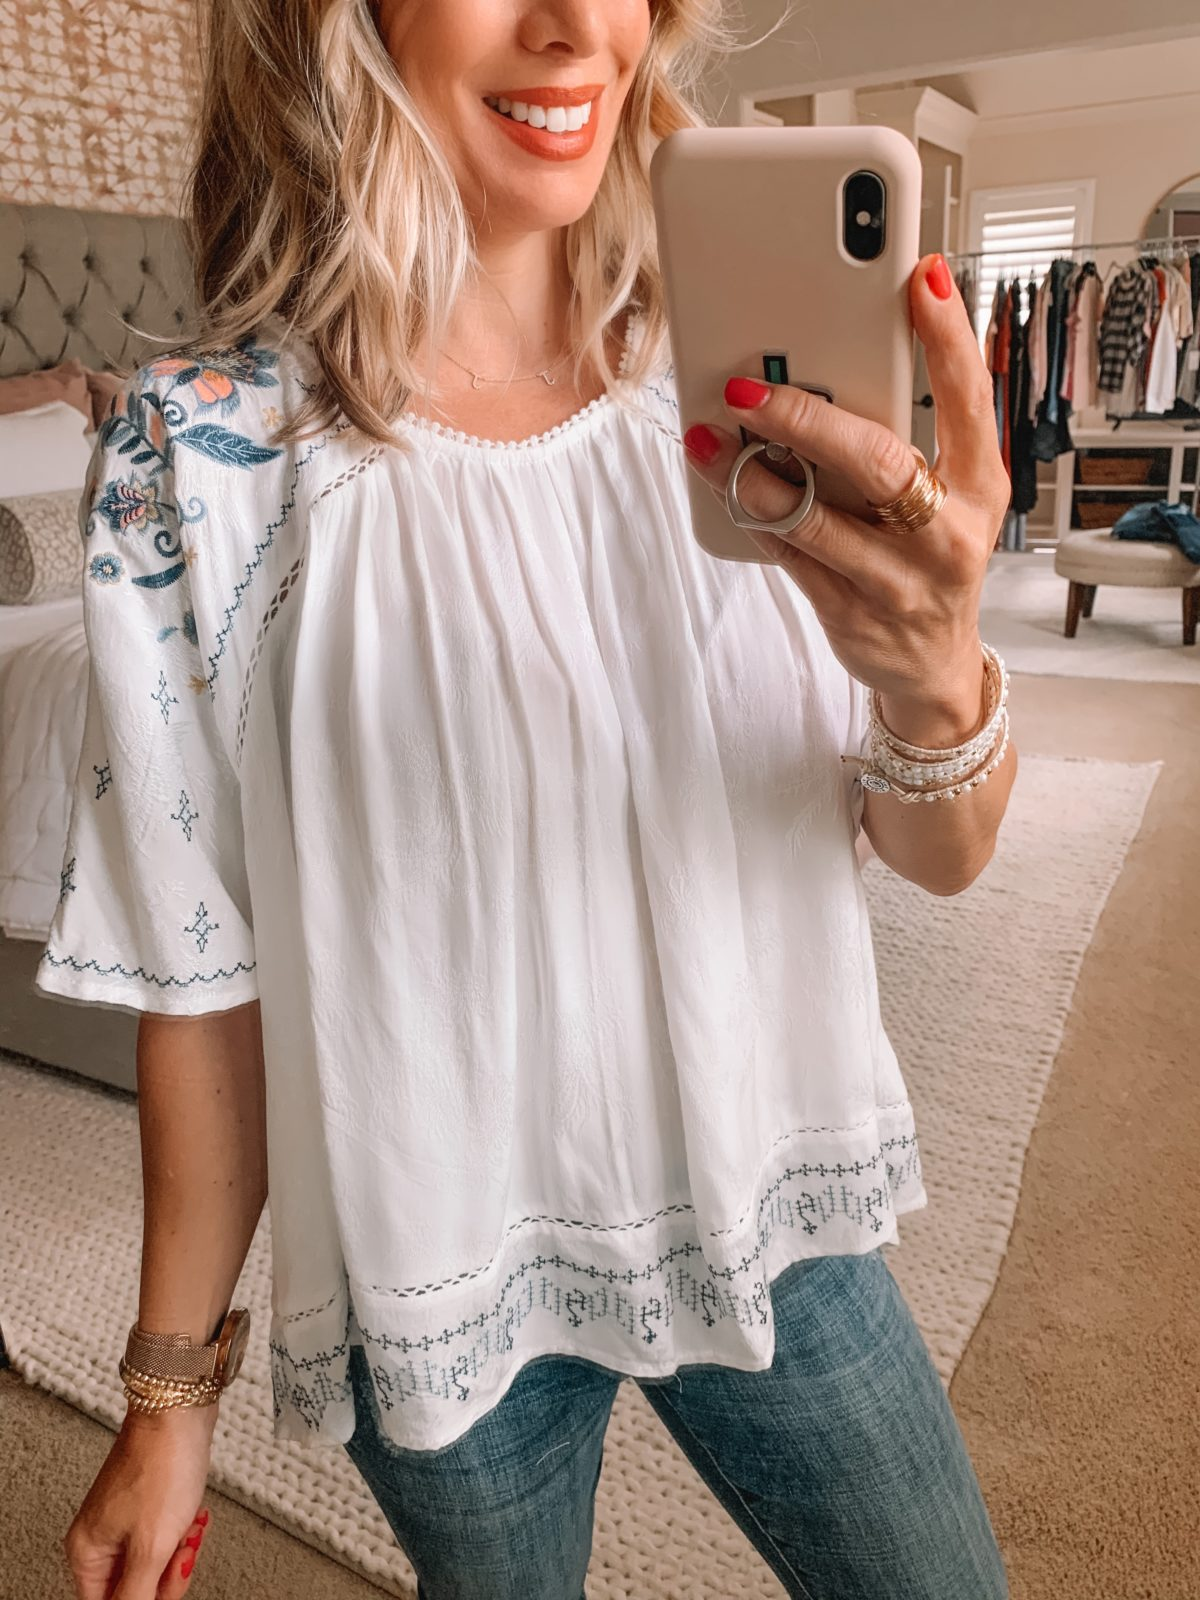 Dressing Room Finds Nordstrom and Target, White Baby Doll Top, Jeans